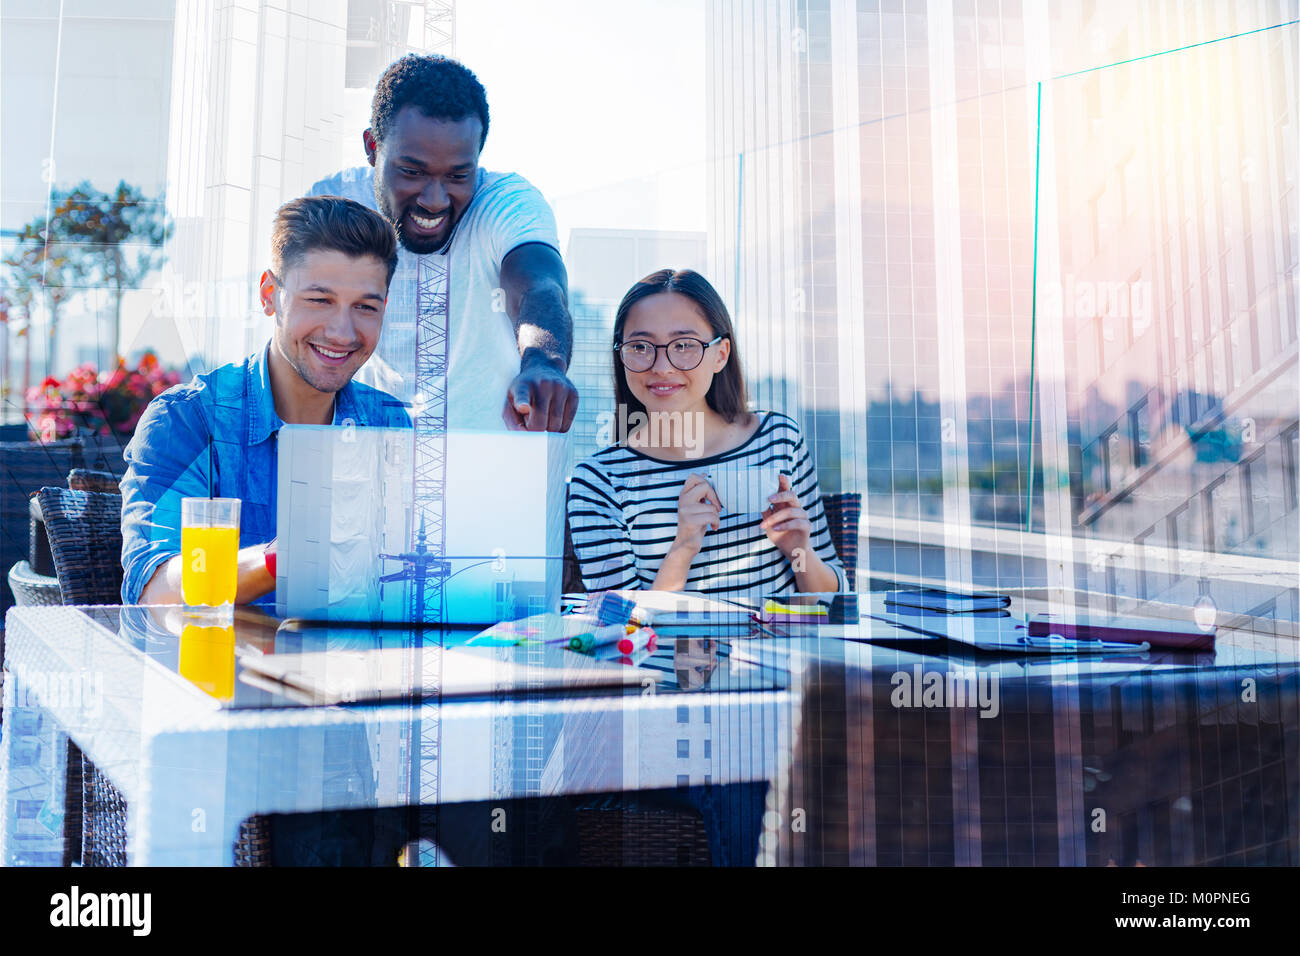 Exuberant young people working together - Stock Image